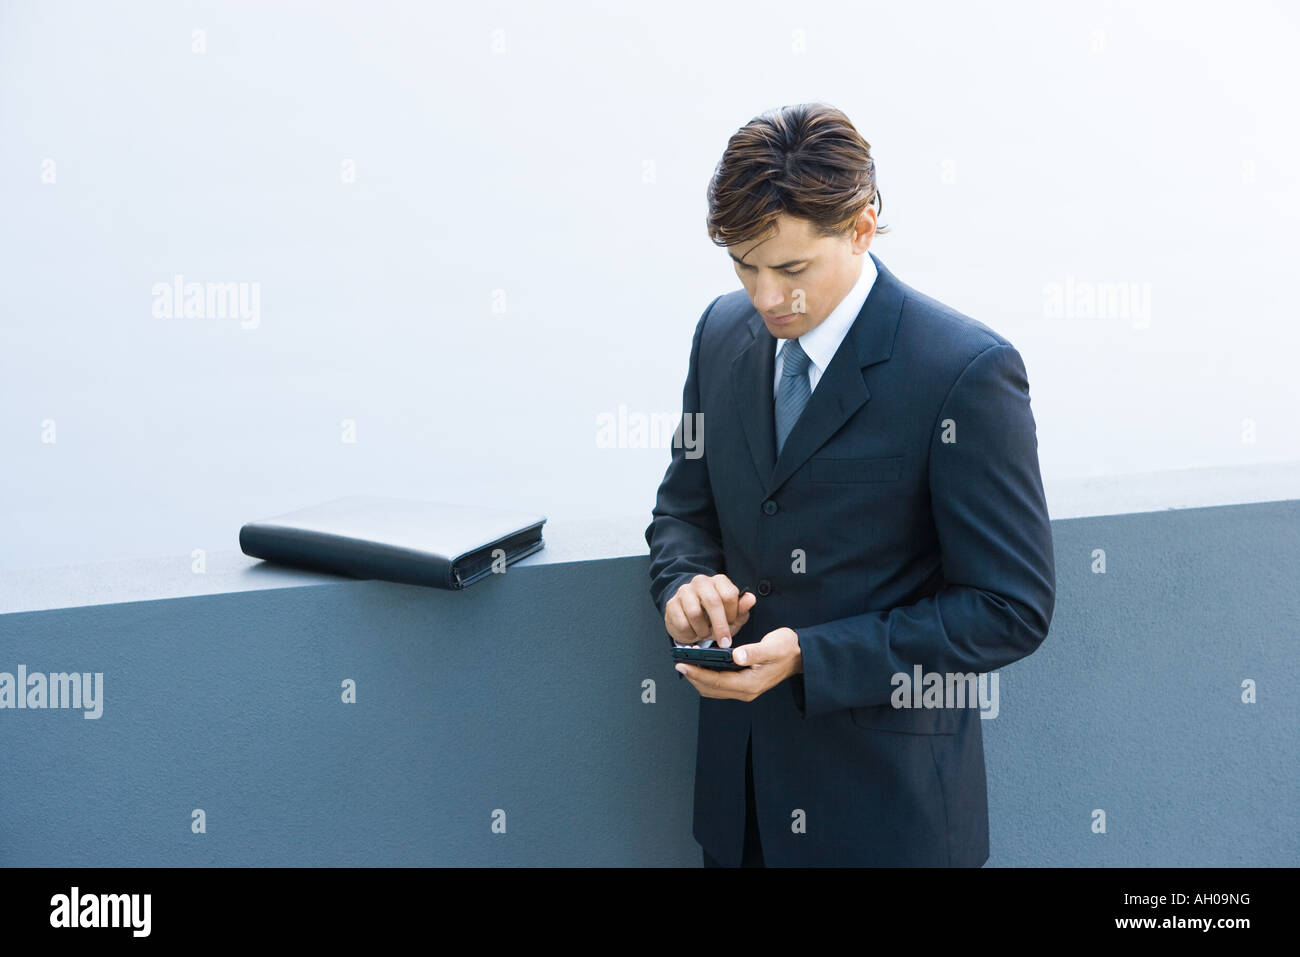 Young businessman using palmtop, looking down, high angle view - Stock Image